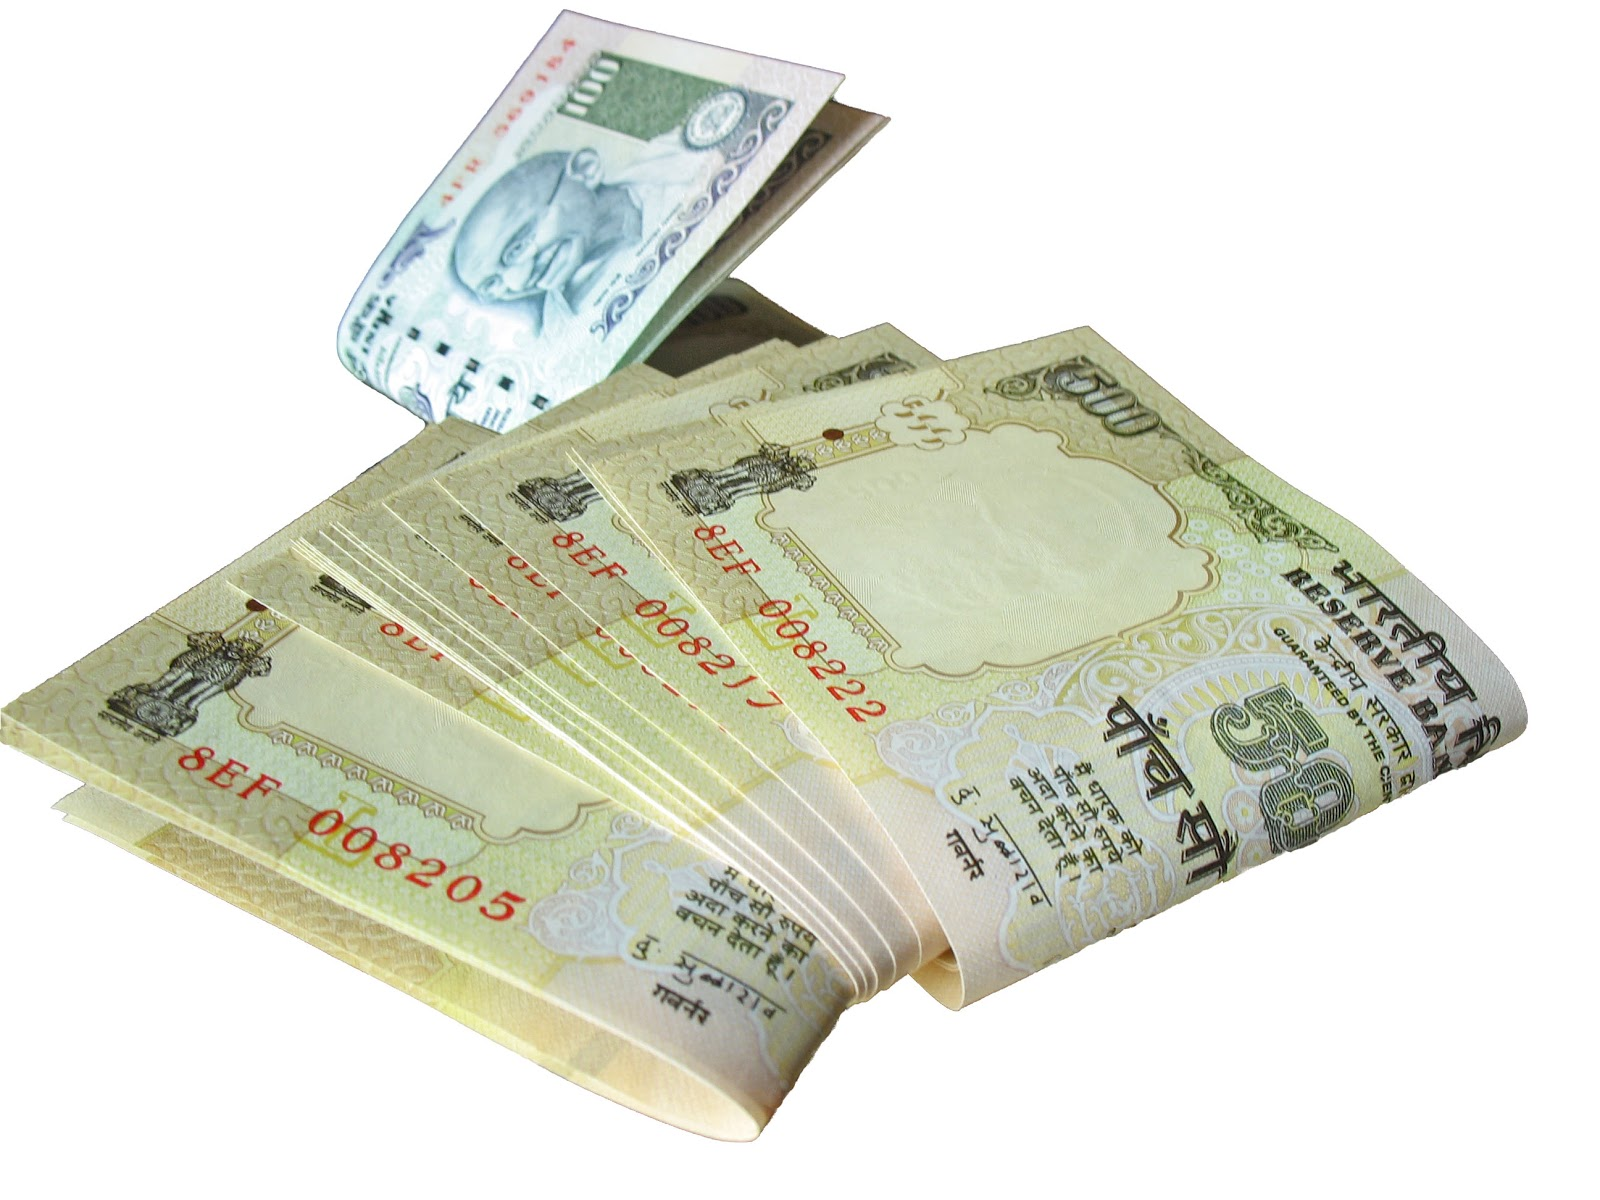 Rupee Note Image Rupee Notes Cutout